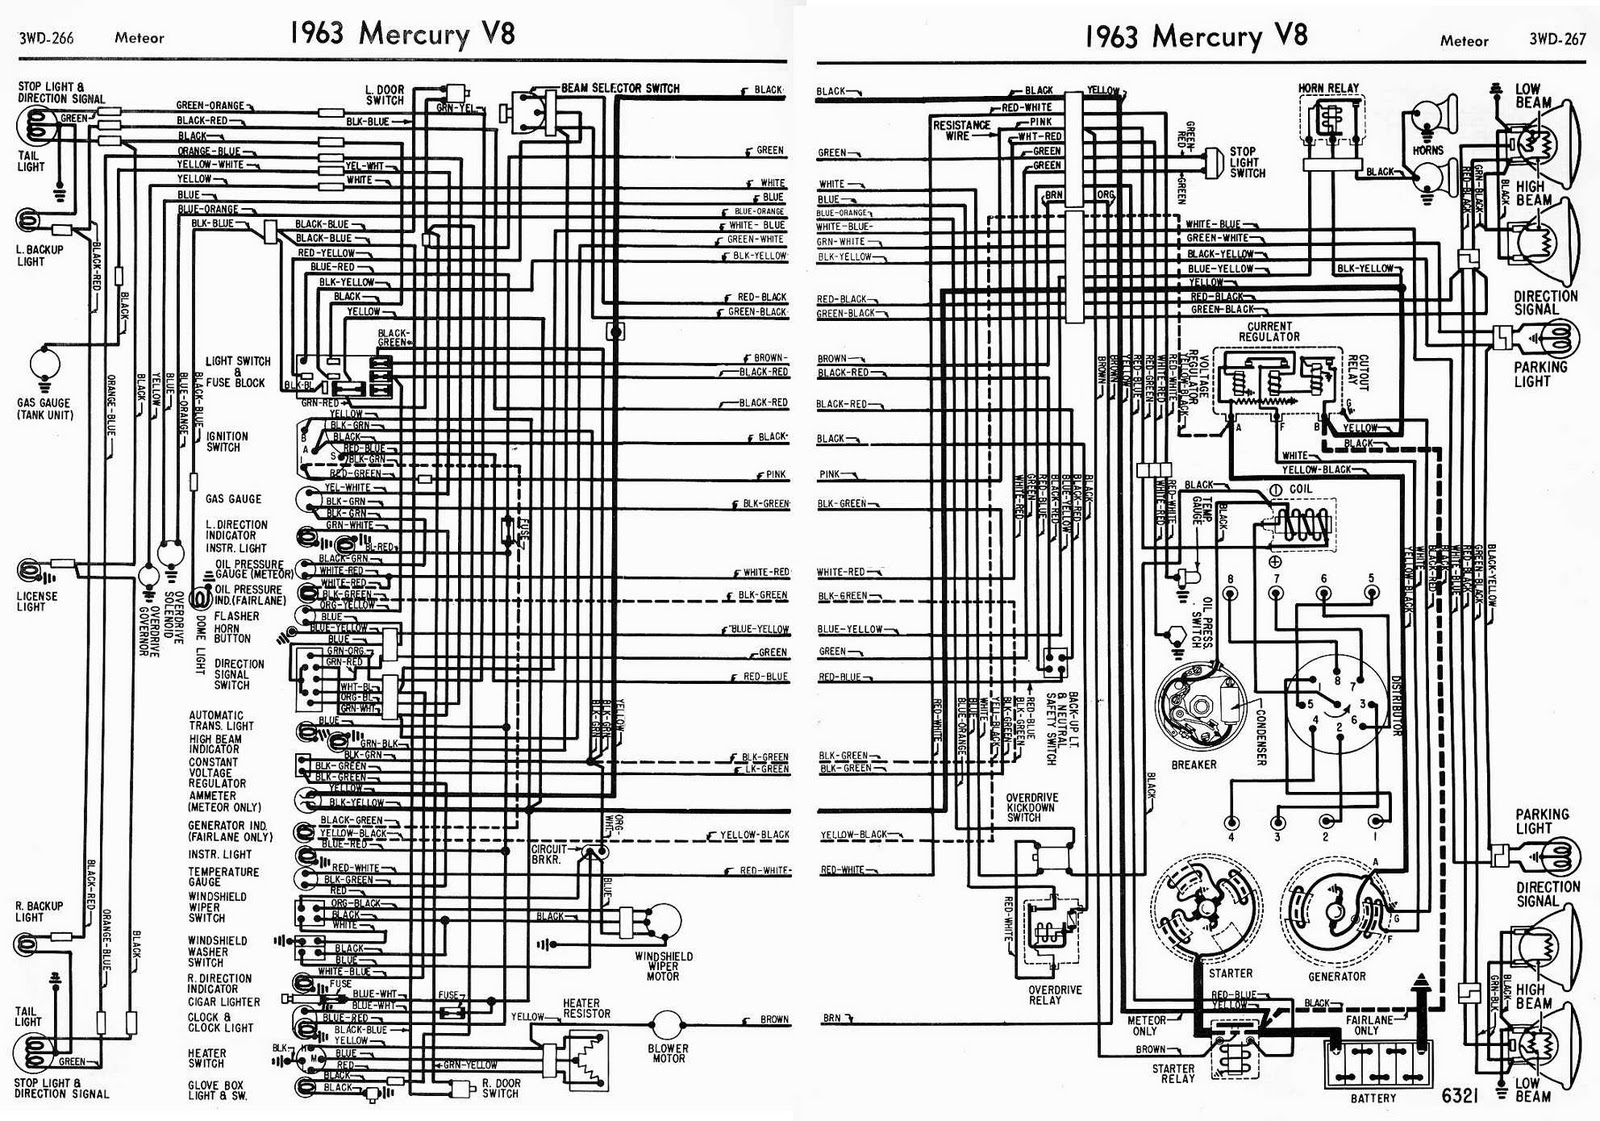 1967 Ford Galaxie 500 Wiring Diagram About 1969 1963 List Of Schematic Circuit U2022 65